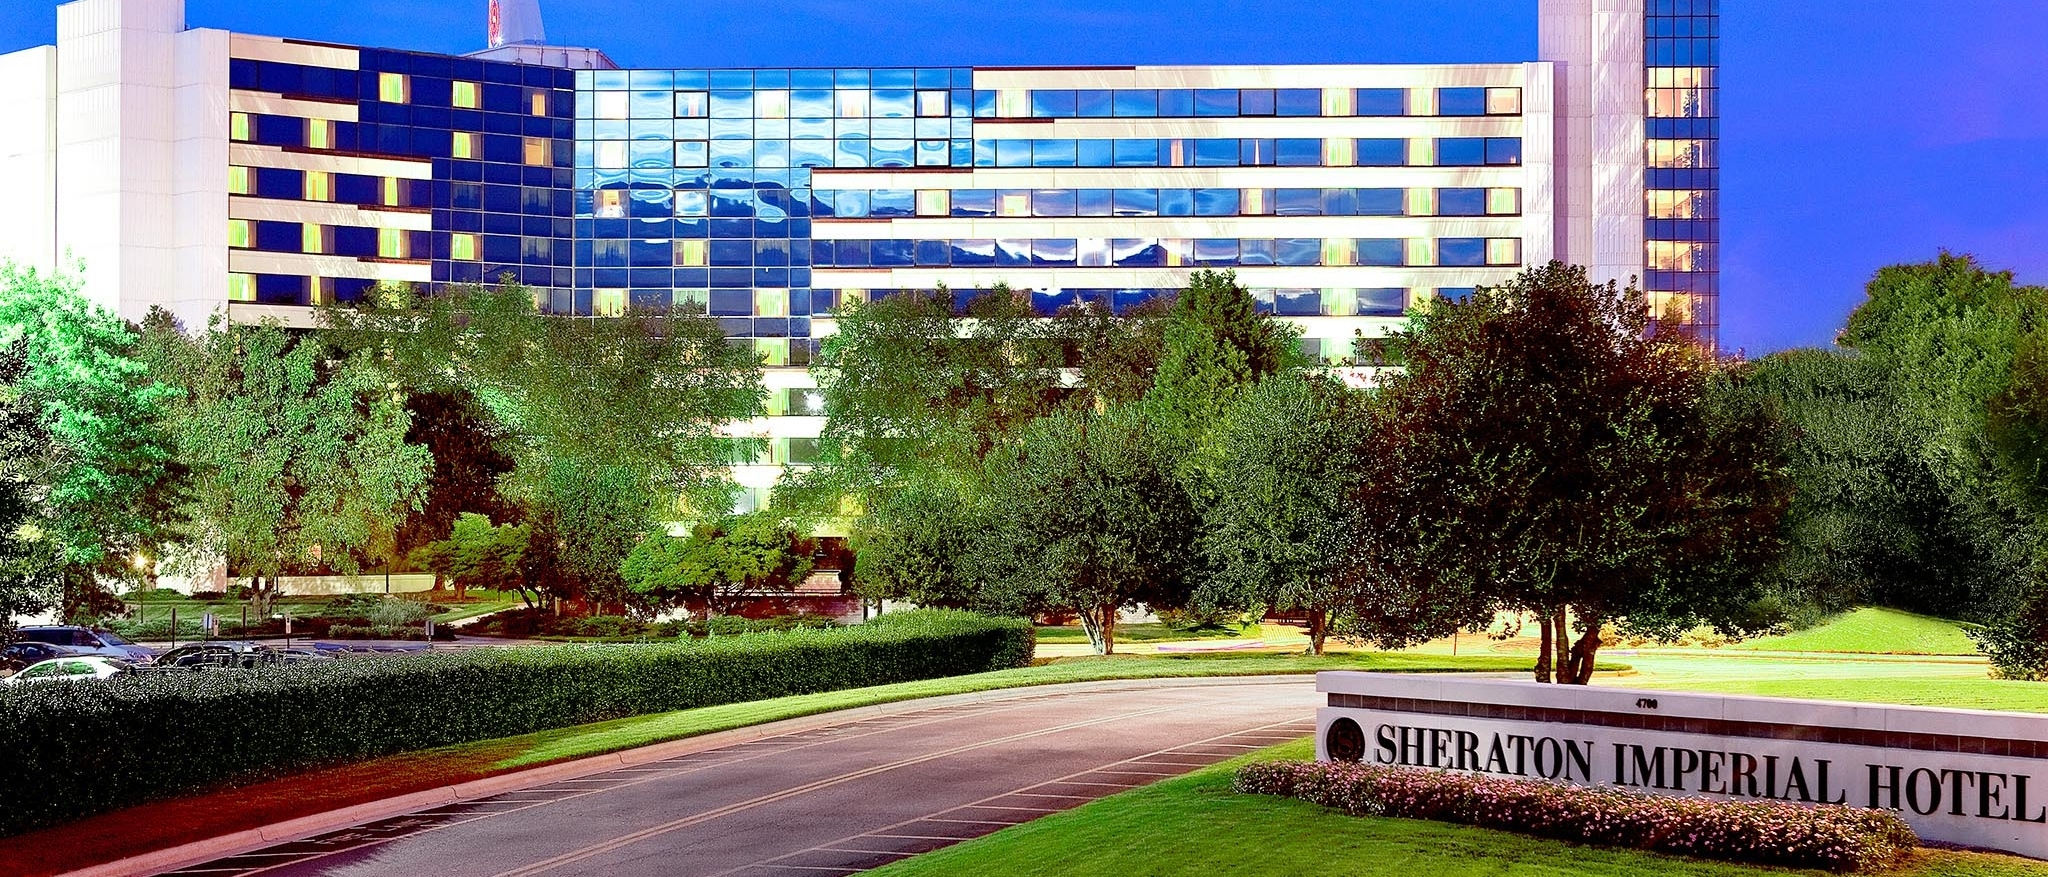 Sheraton Imperial Hotel Raleigh-Durham Airport at Research Triangle Park - Exterior